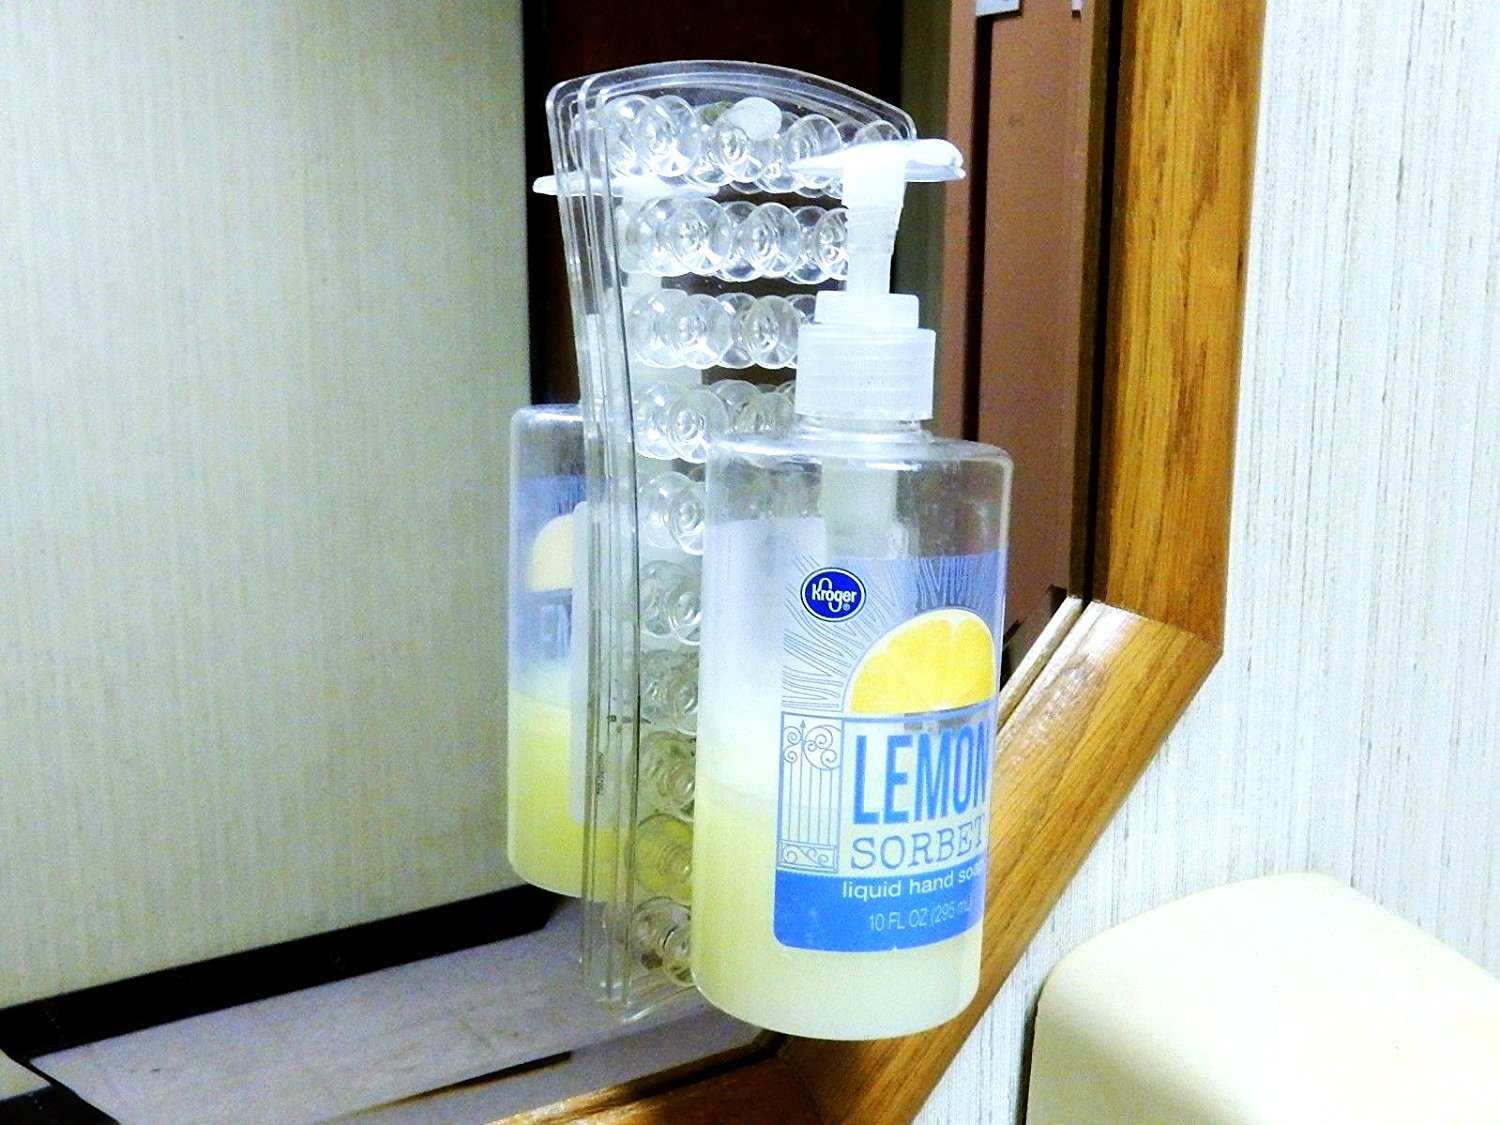 2 Suction Cup Bottle Holders - Sticks To Shower Wall - LiquidationPrice